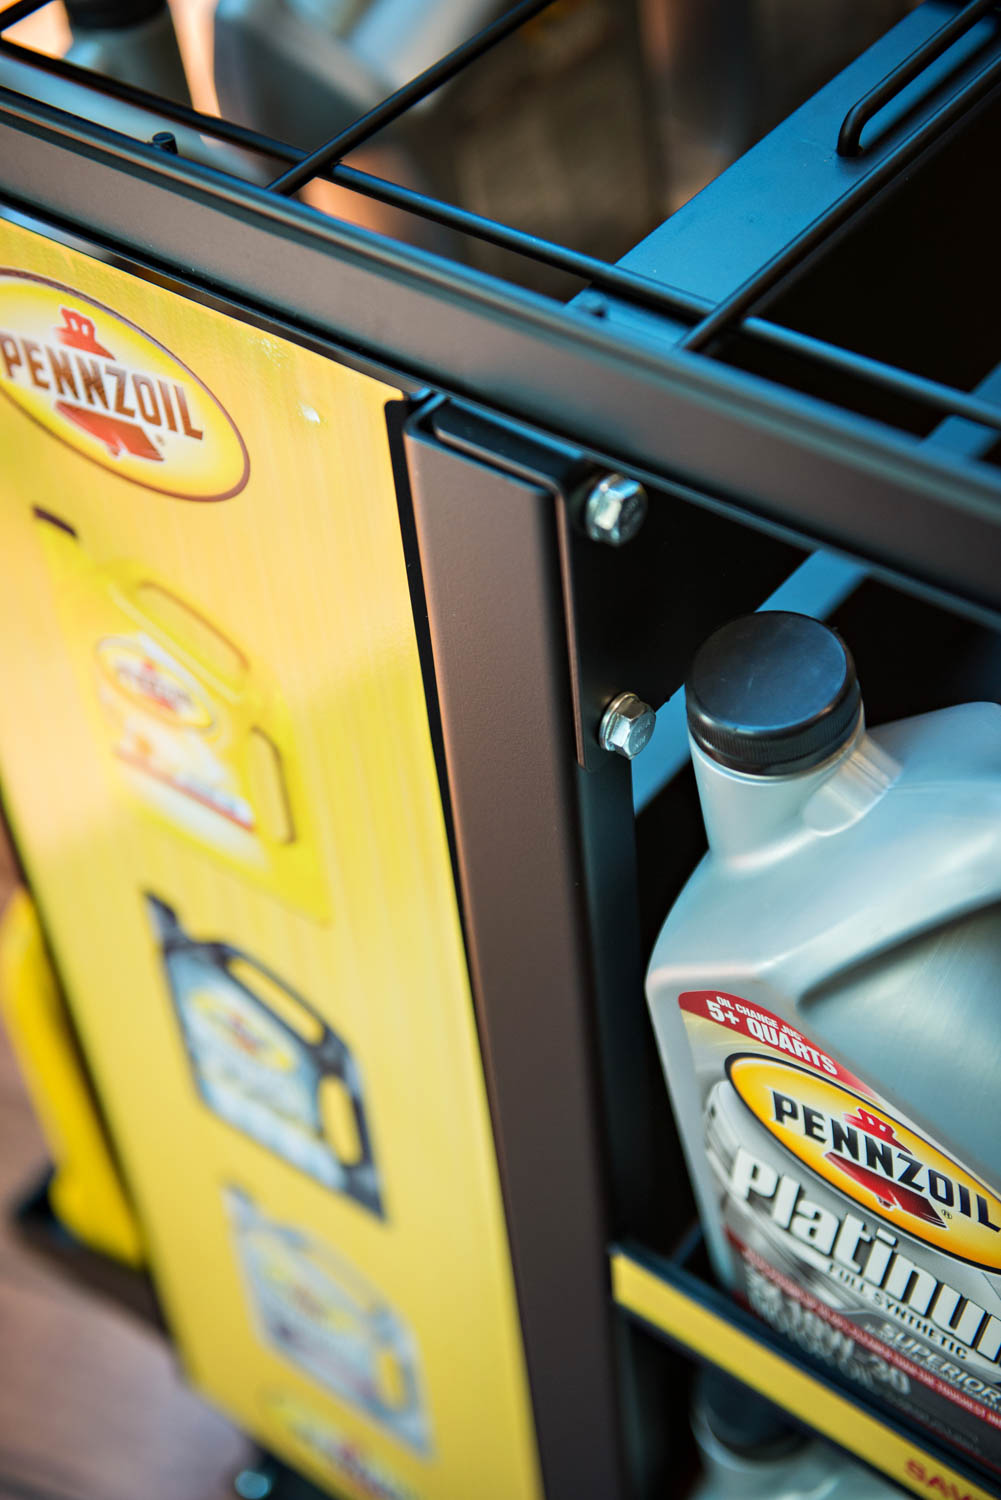 Metaline pennzoil platinum display